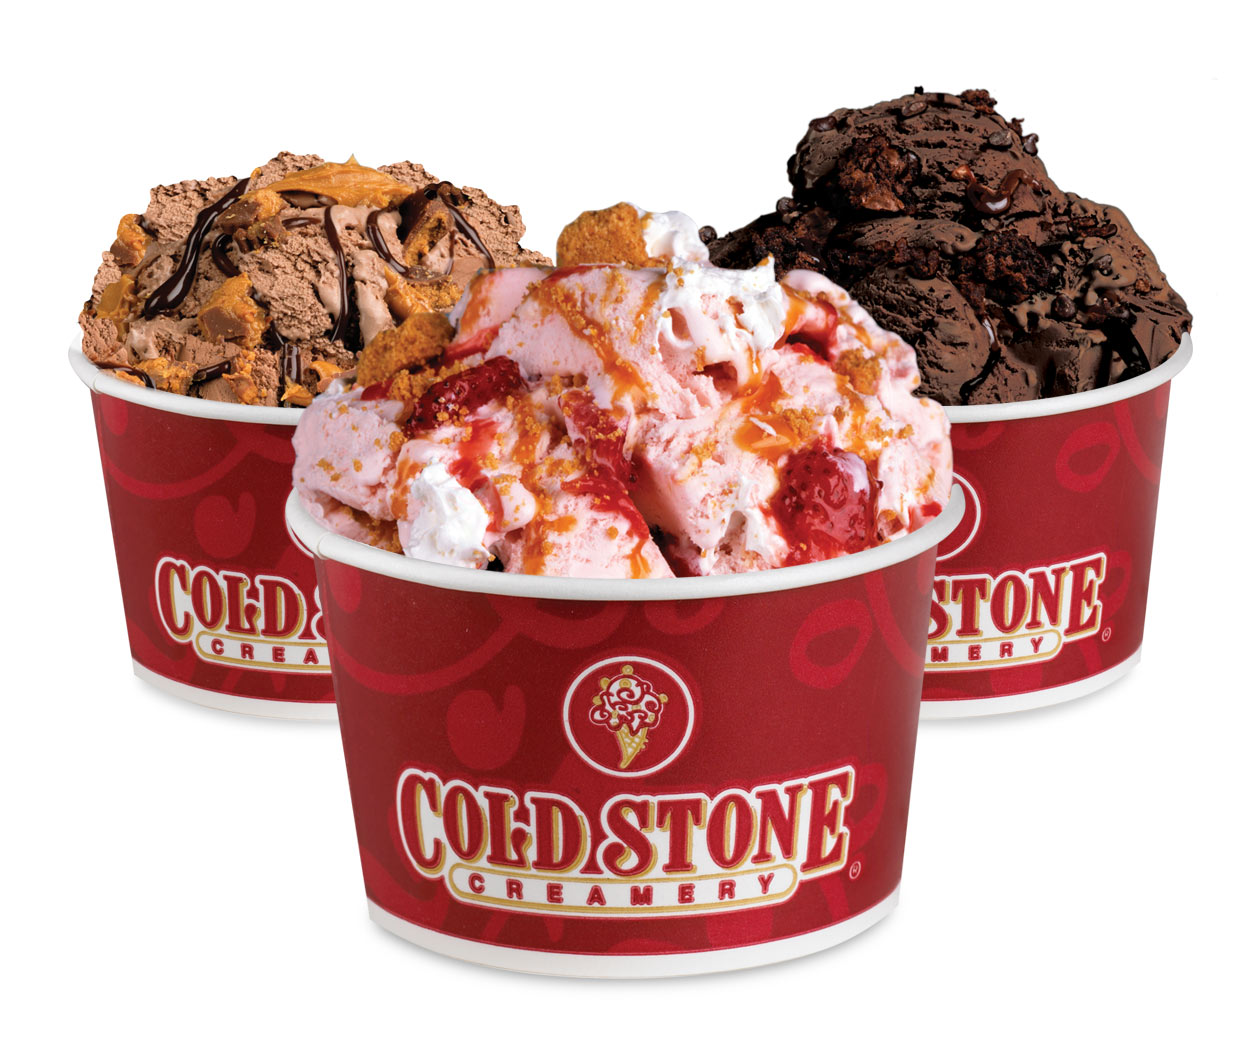 Cold stone creamery about our ice cream facts the ultimate ice cream experience ccuart